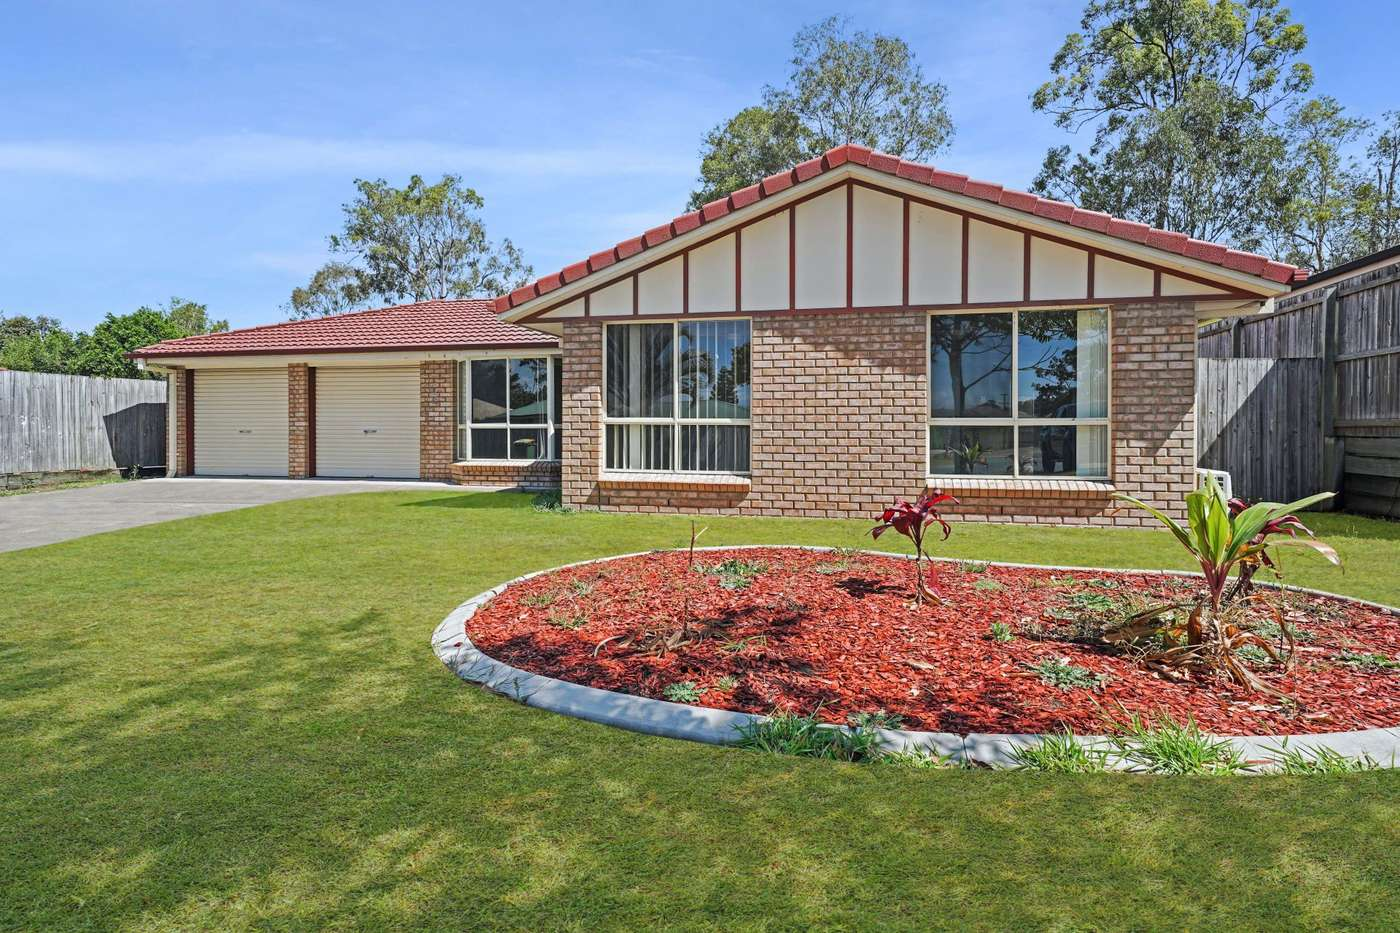 Main view of Homely house listing, 18 Windamere Ct, Heritage Park, QLD 4118